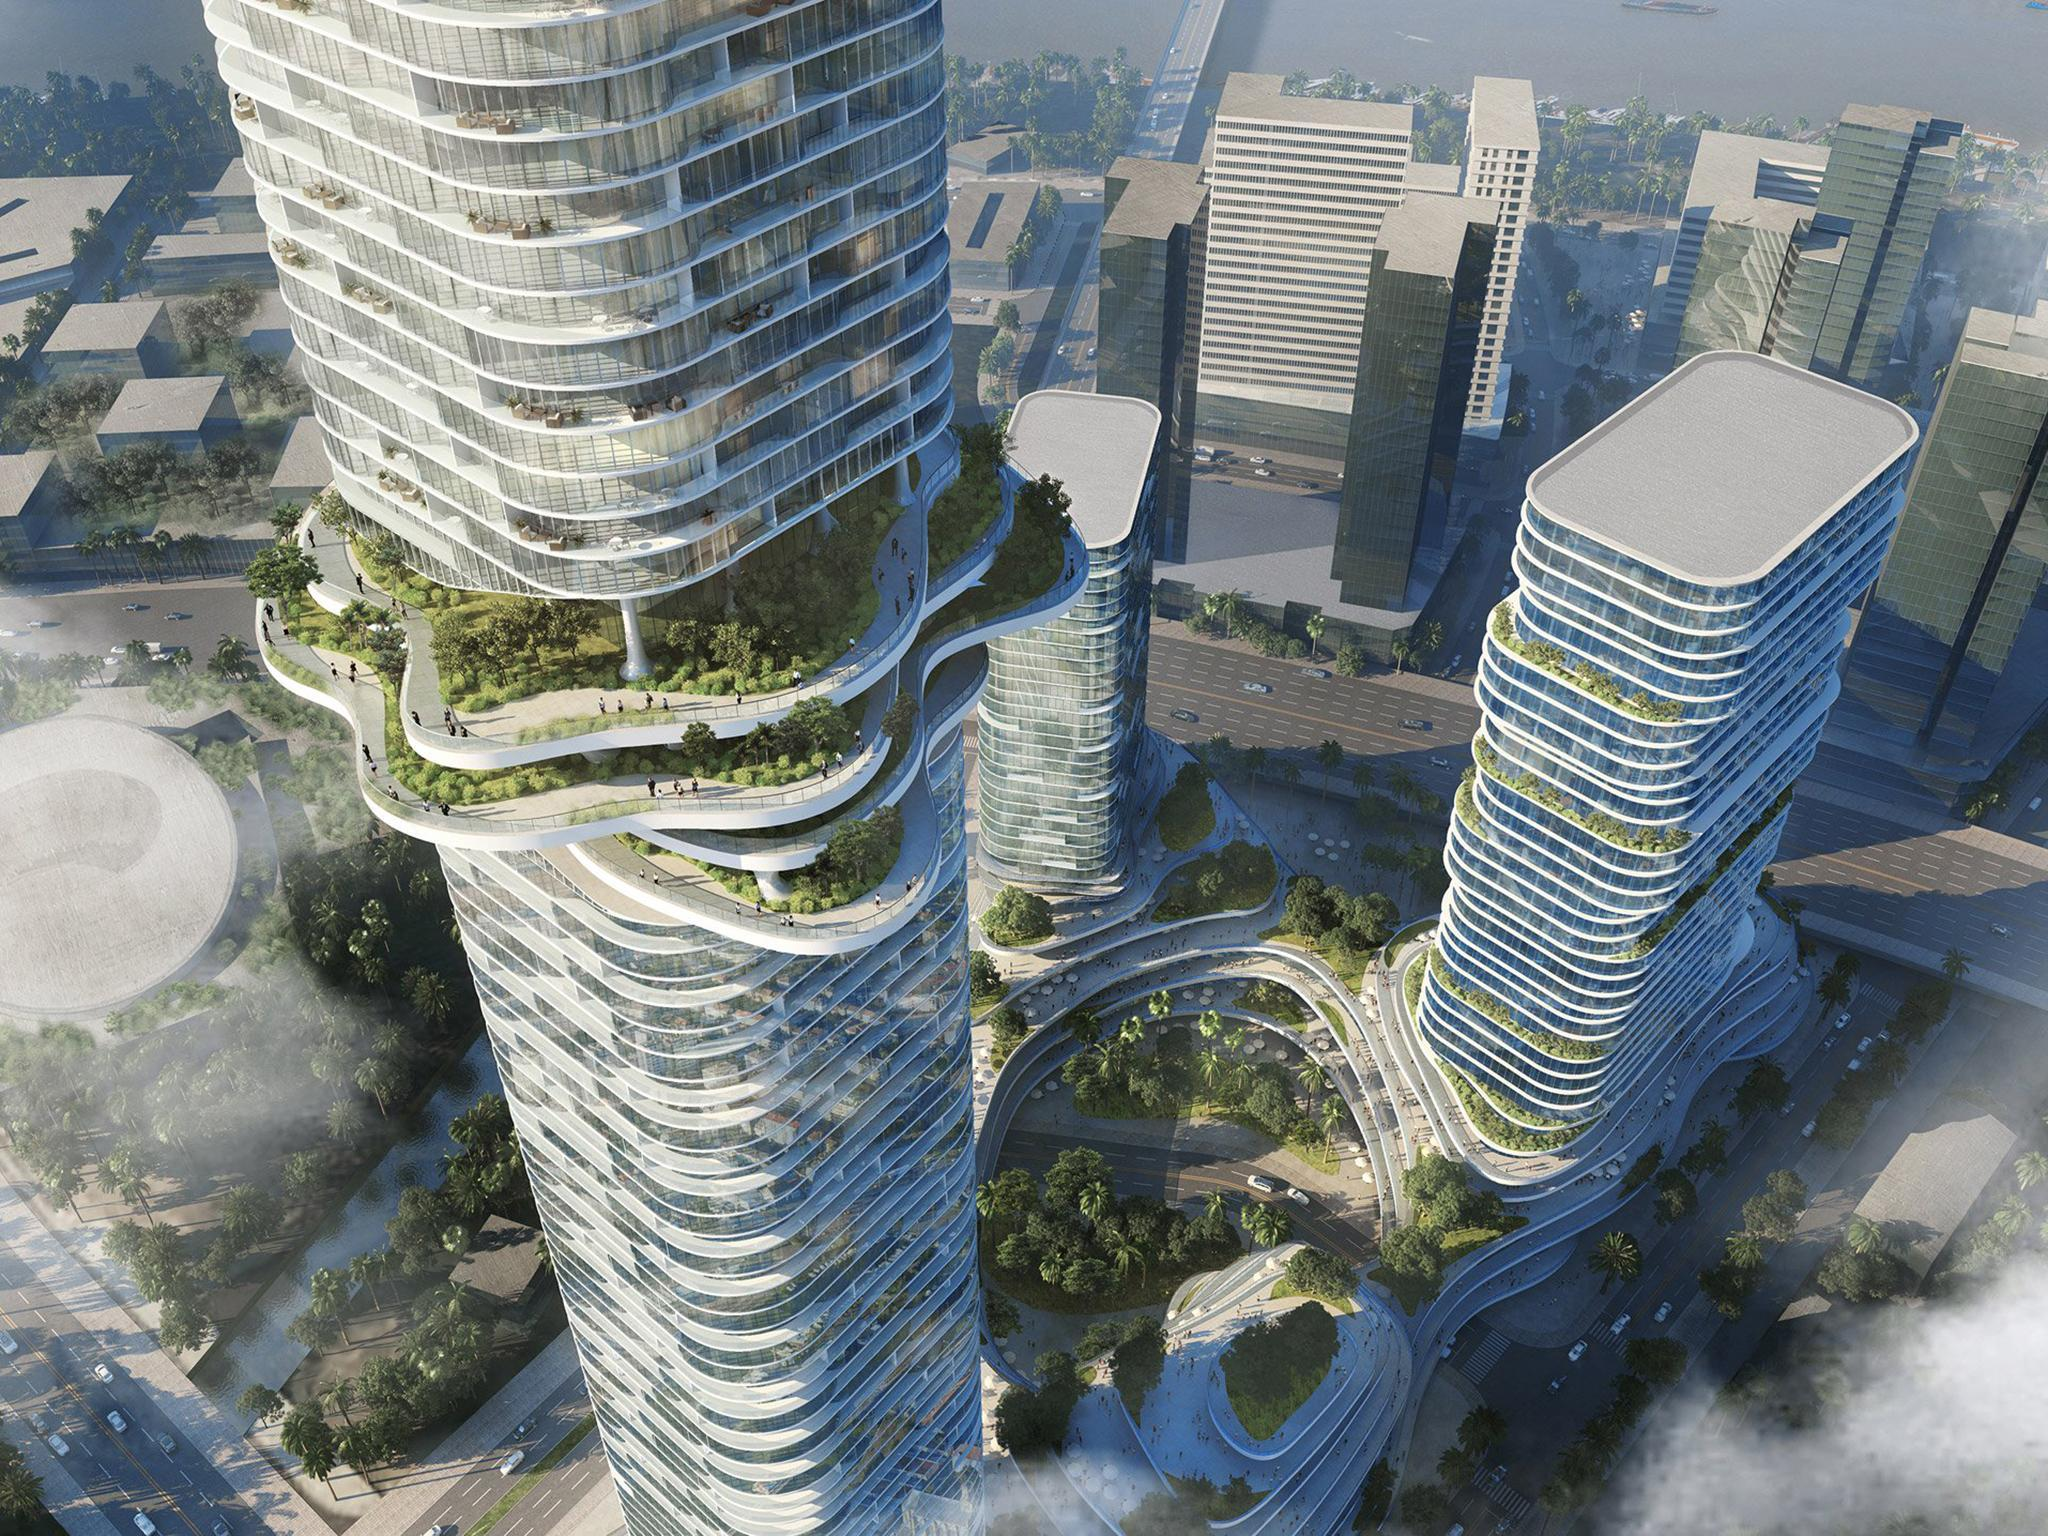 Asia's newest 'Garden' skyscraper – designed to look like rice terraces